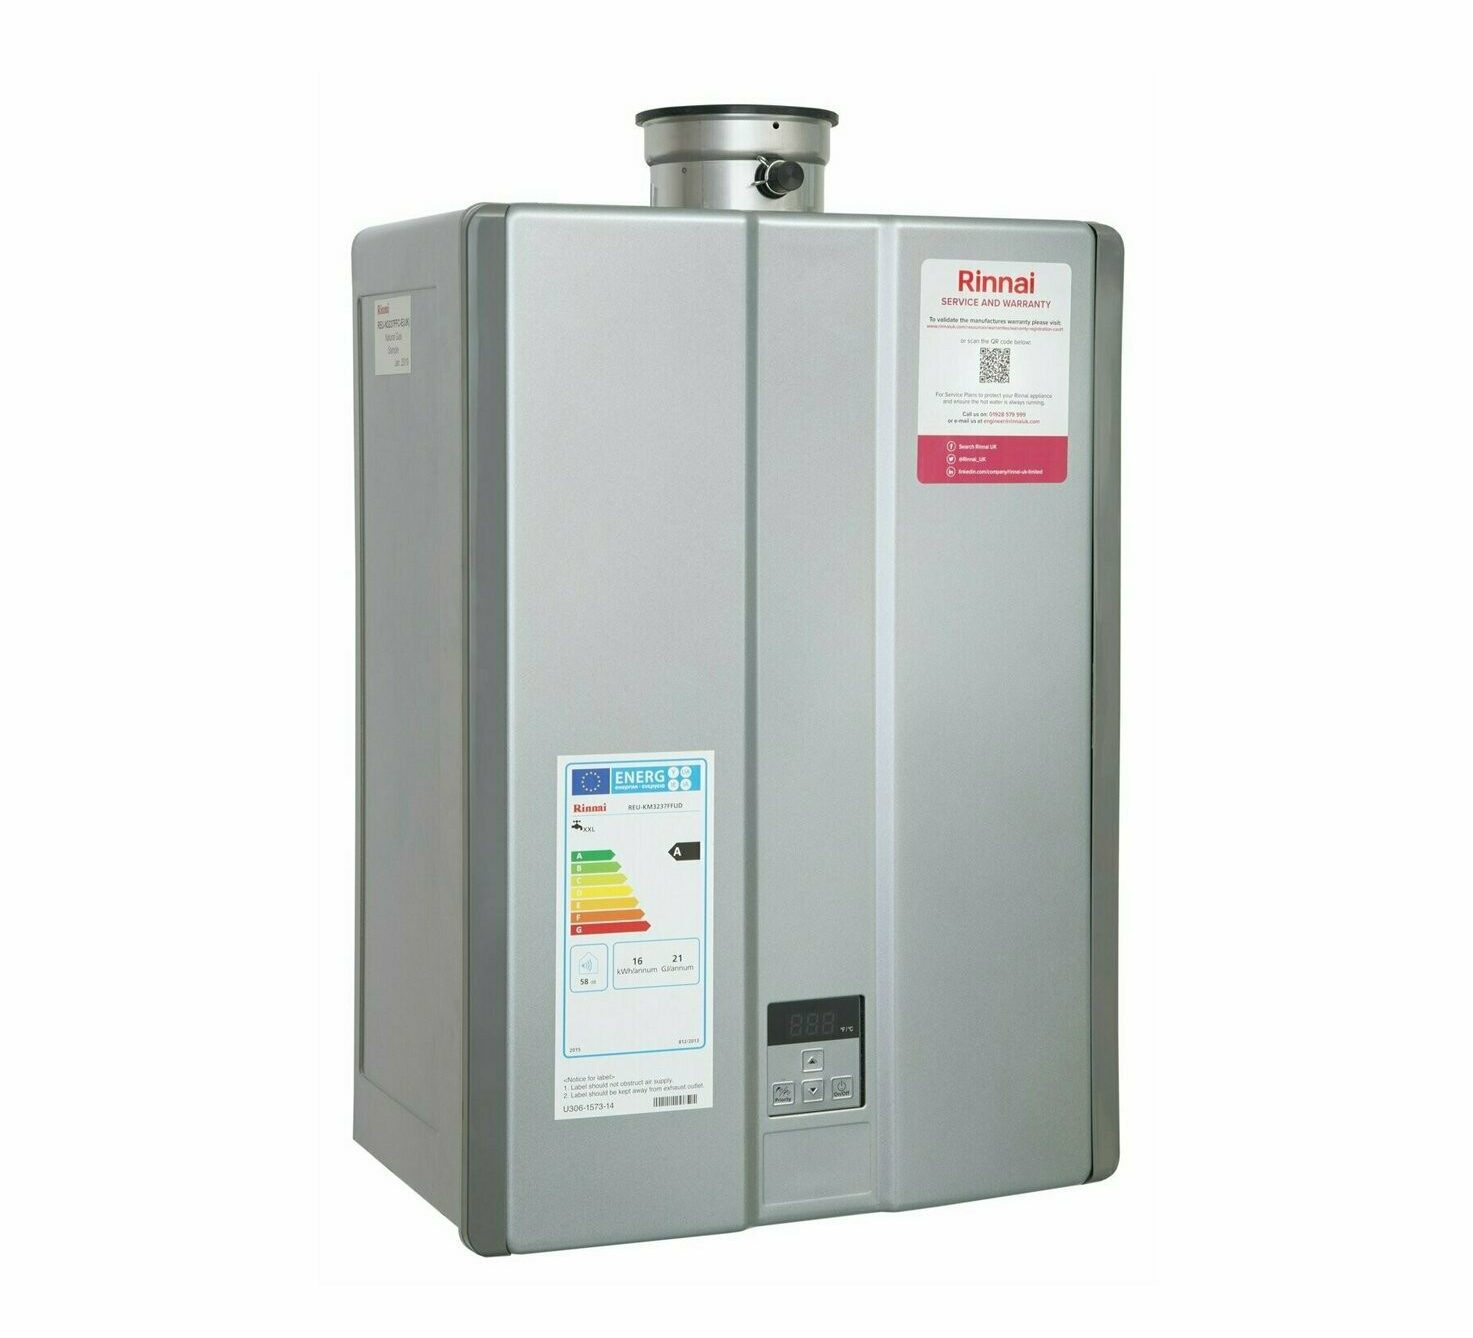 condensing-water-heater-e1616265941759 Water Heaters- Which Type Is the Right One for Your Home?